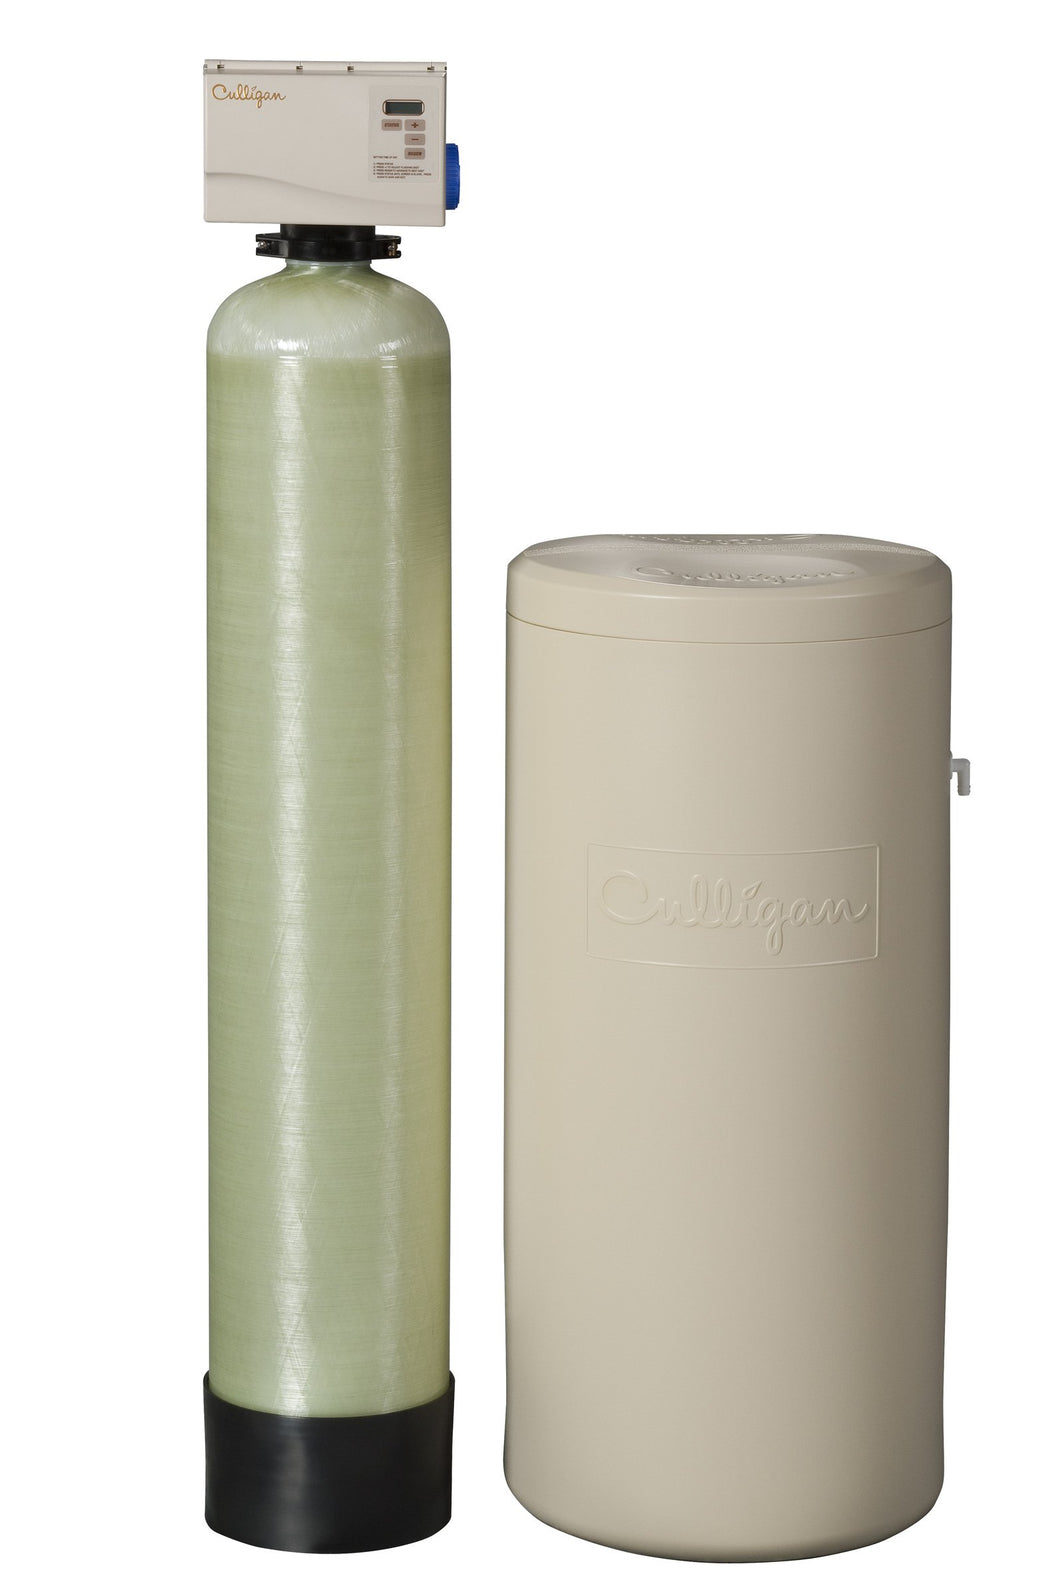 Culligan Total Home Water Softener & Carbon Filter